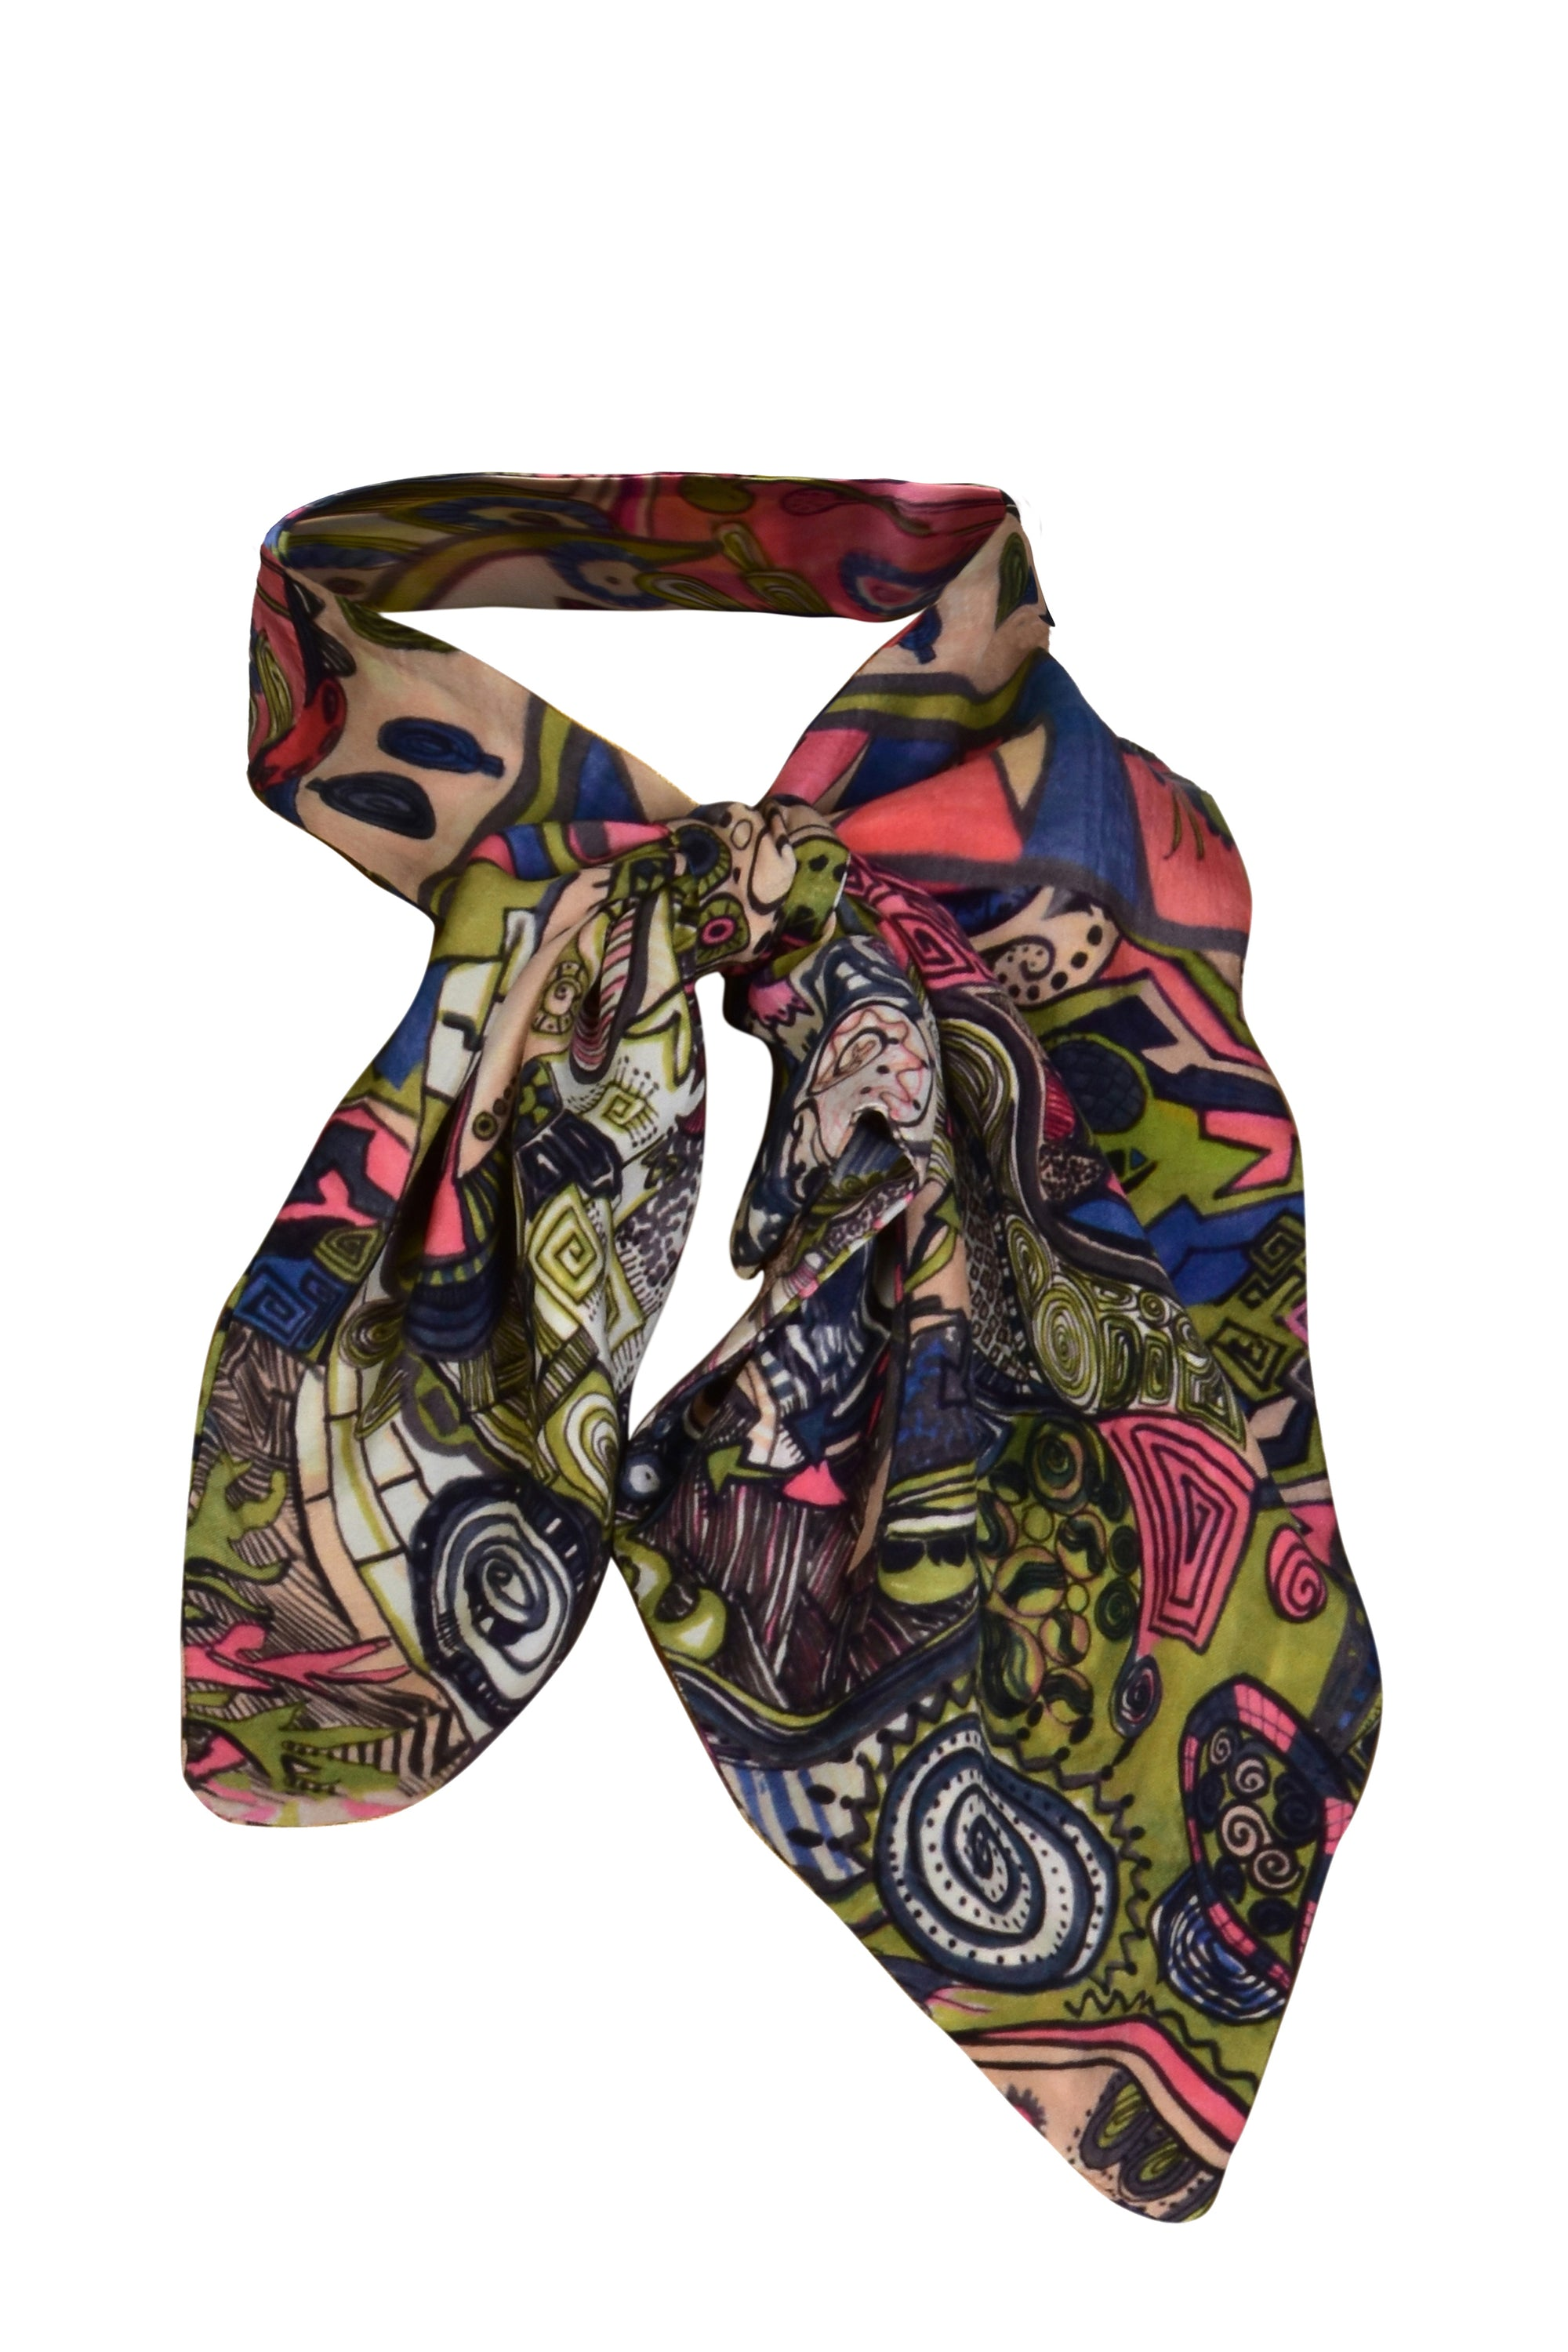 MINU – Hand Painted Persian Print Neck Scarf